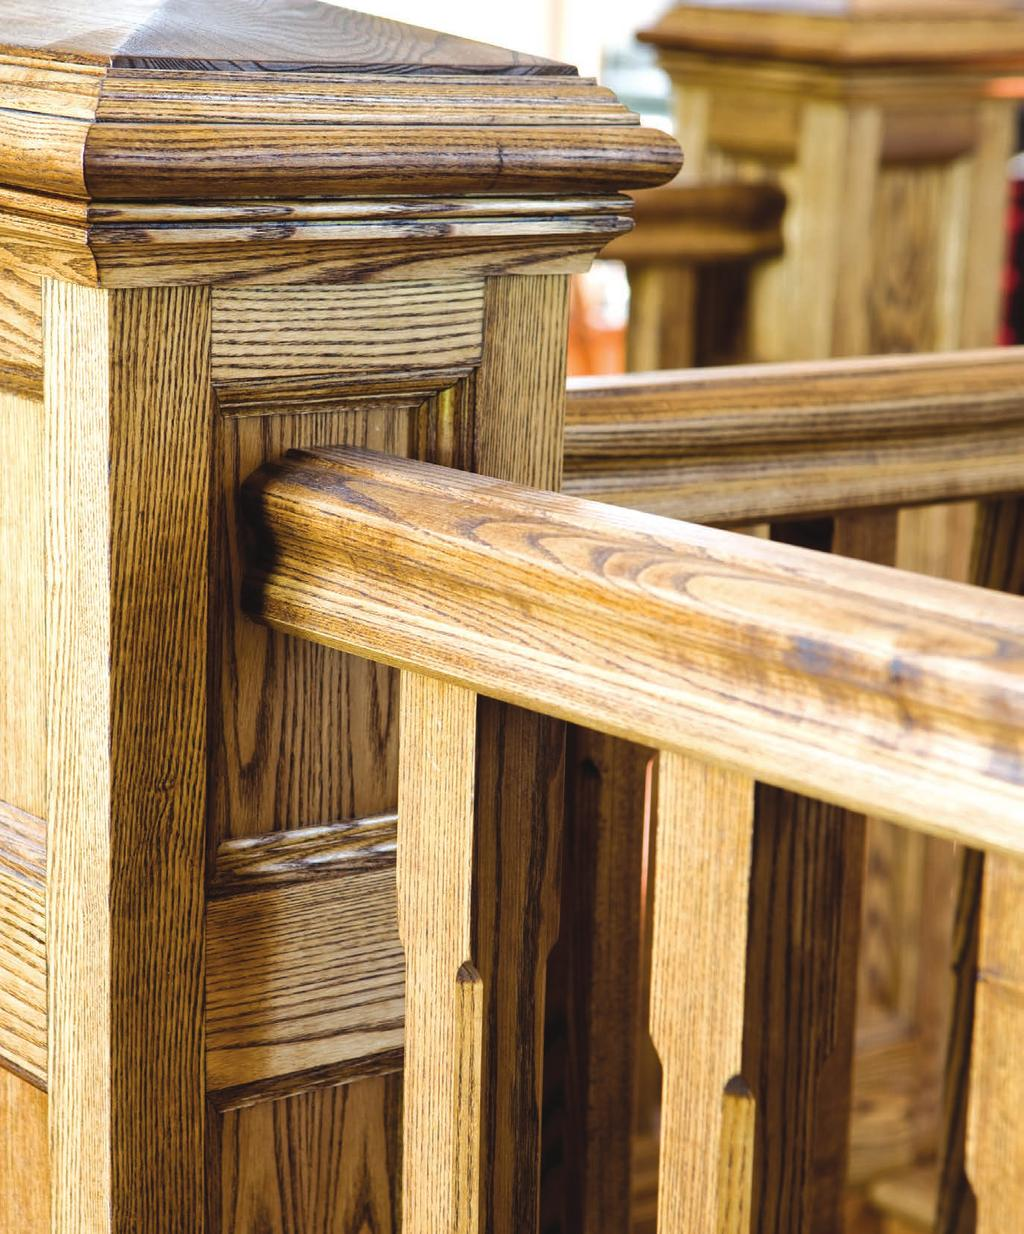 By Steve Maxwell If you enjoy craftsmanship, consider box newel railings. They re a classic detail and the right kind of client will love you for suggesting them.